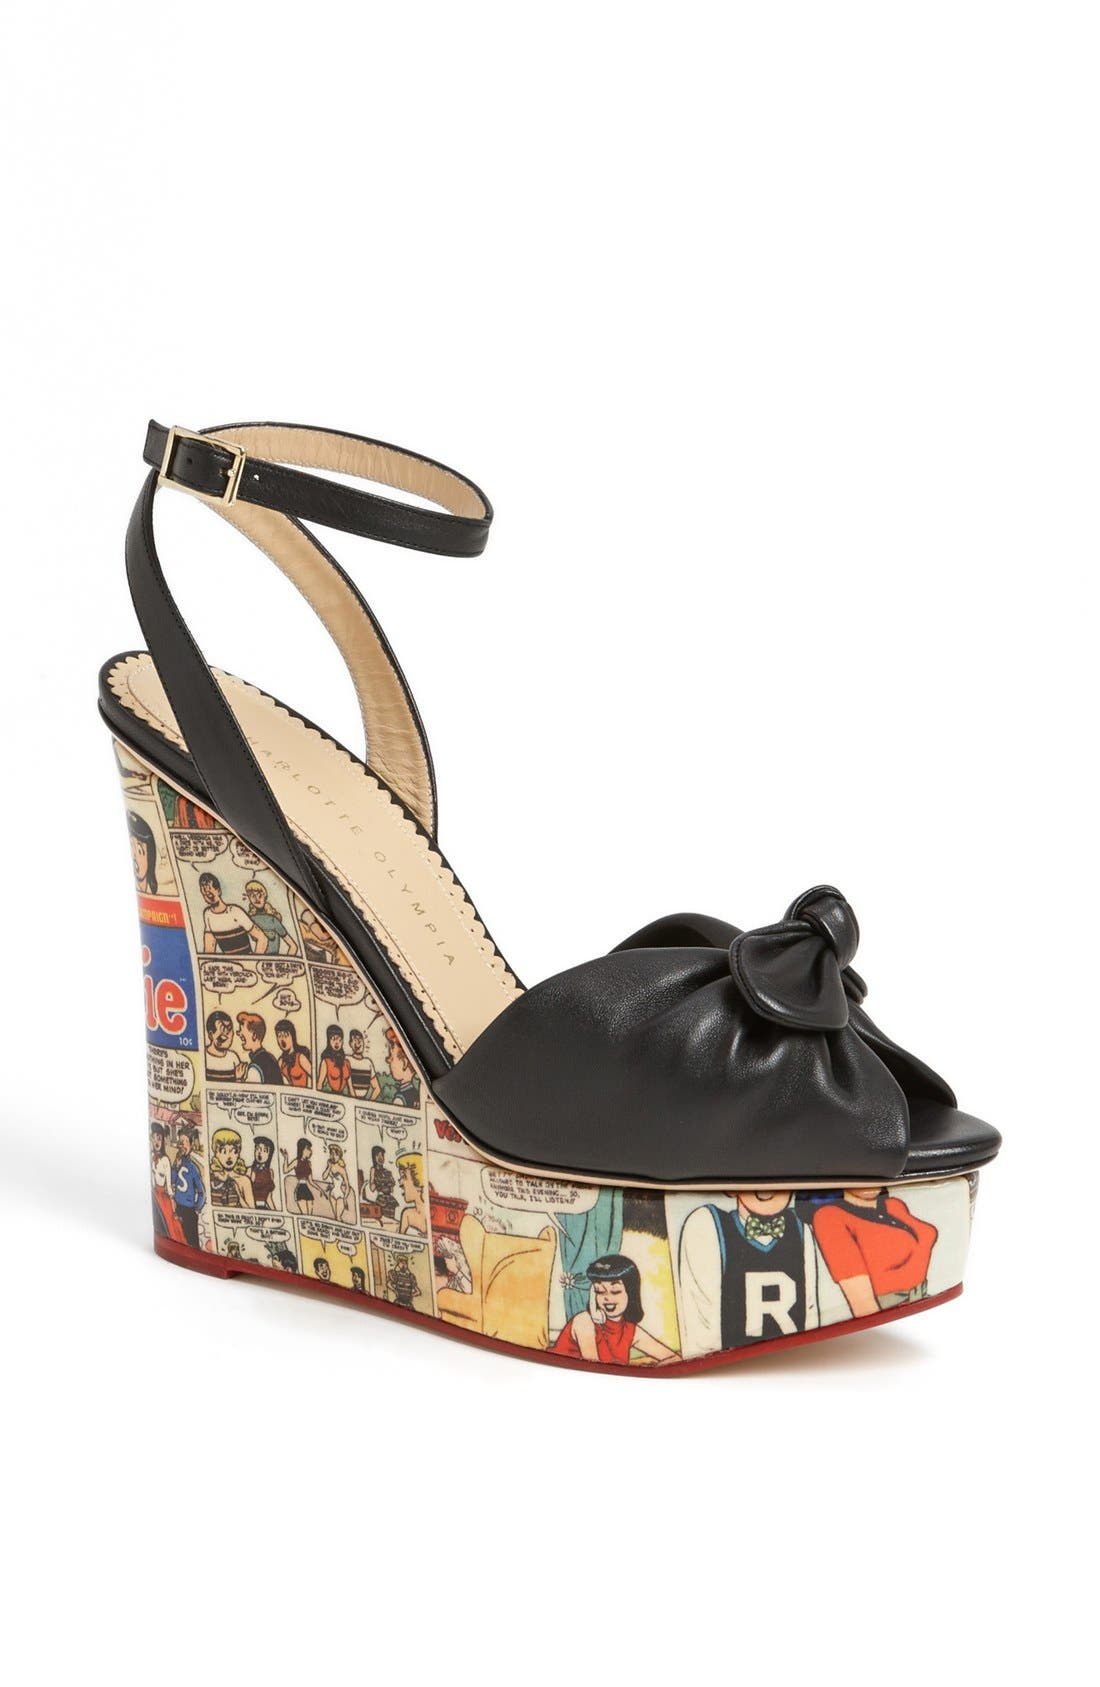 Alternate Image 1 Selected - Charlotte Olympia 'Archie' Wedge Sandal (Nordstrom Exclusive)